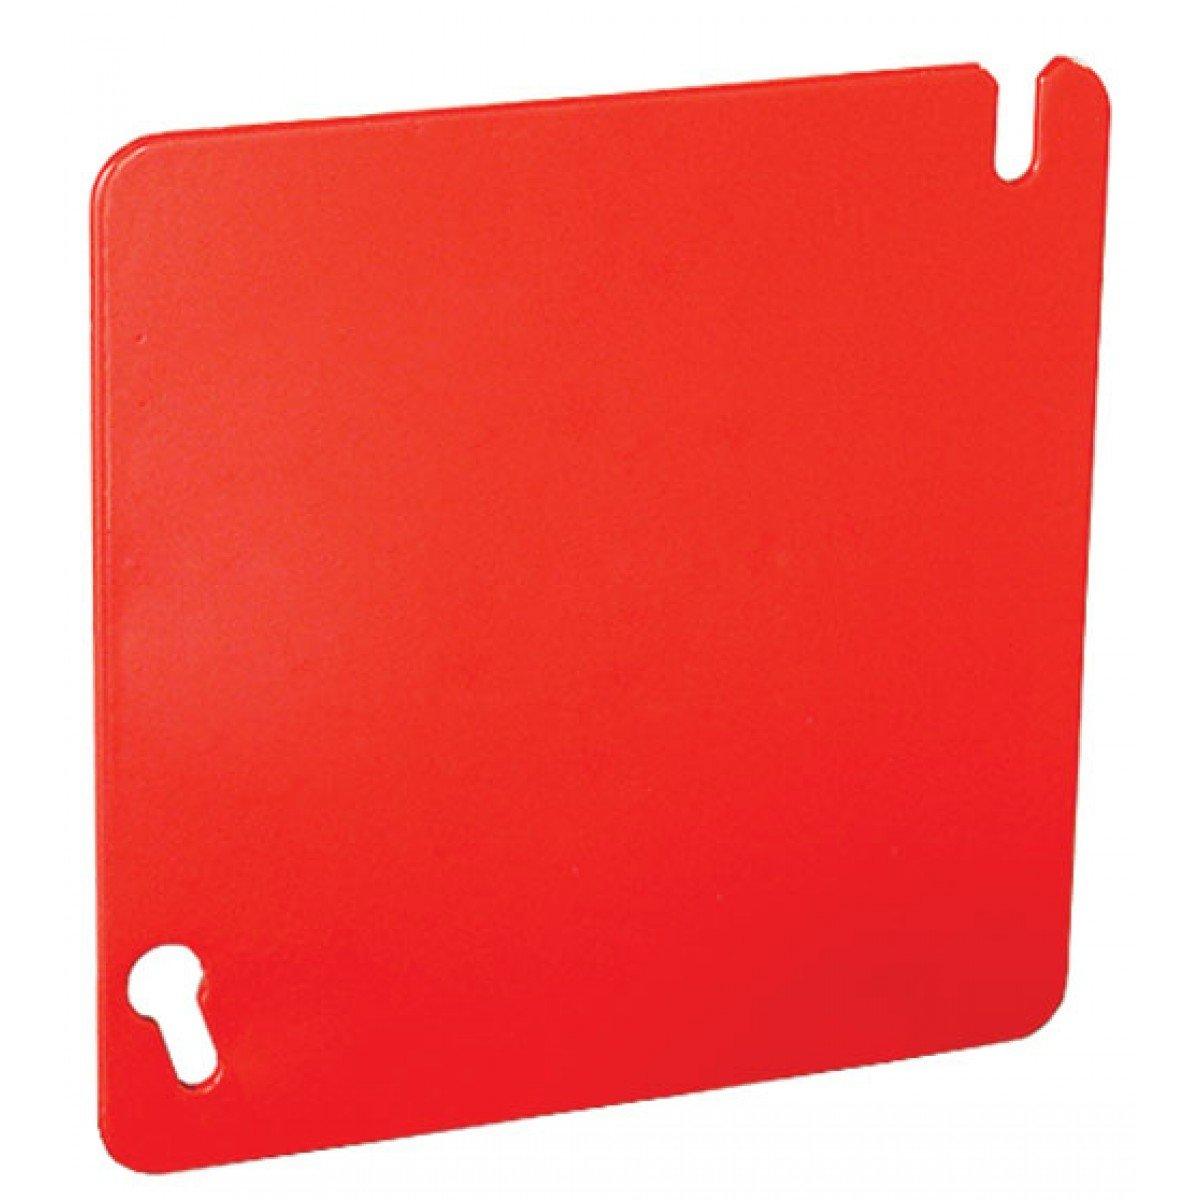 10 Pcs, Zinc Plated Steel Painted Red 4 Square Flat Cover, Blank Easily Detectable As Fire Alarm Or Safety Circuits